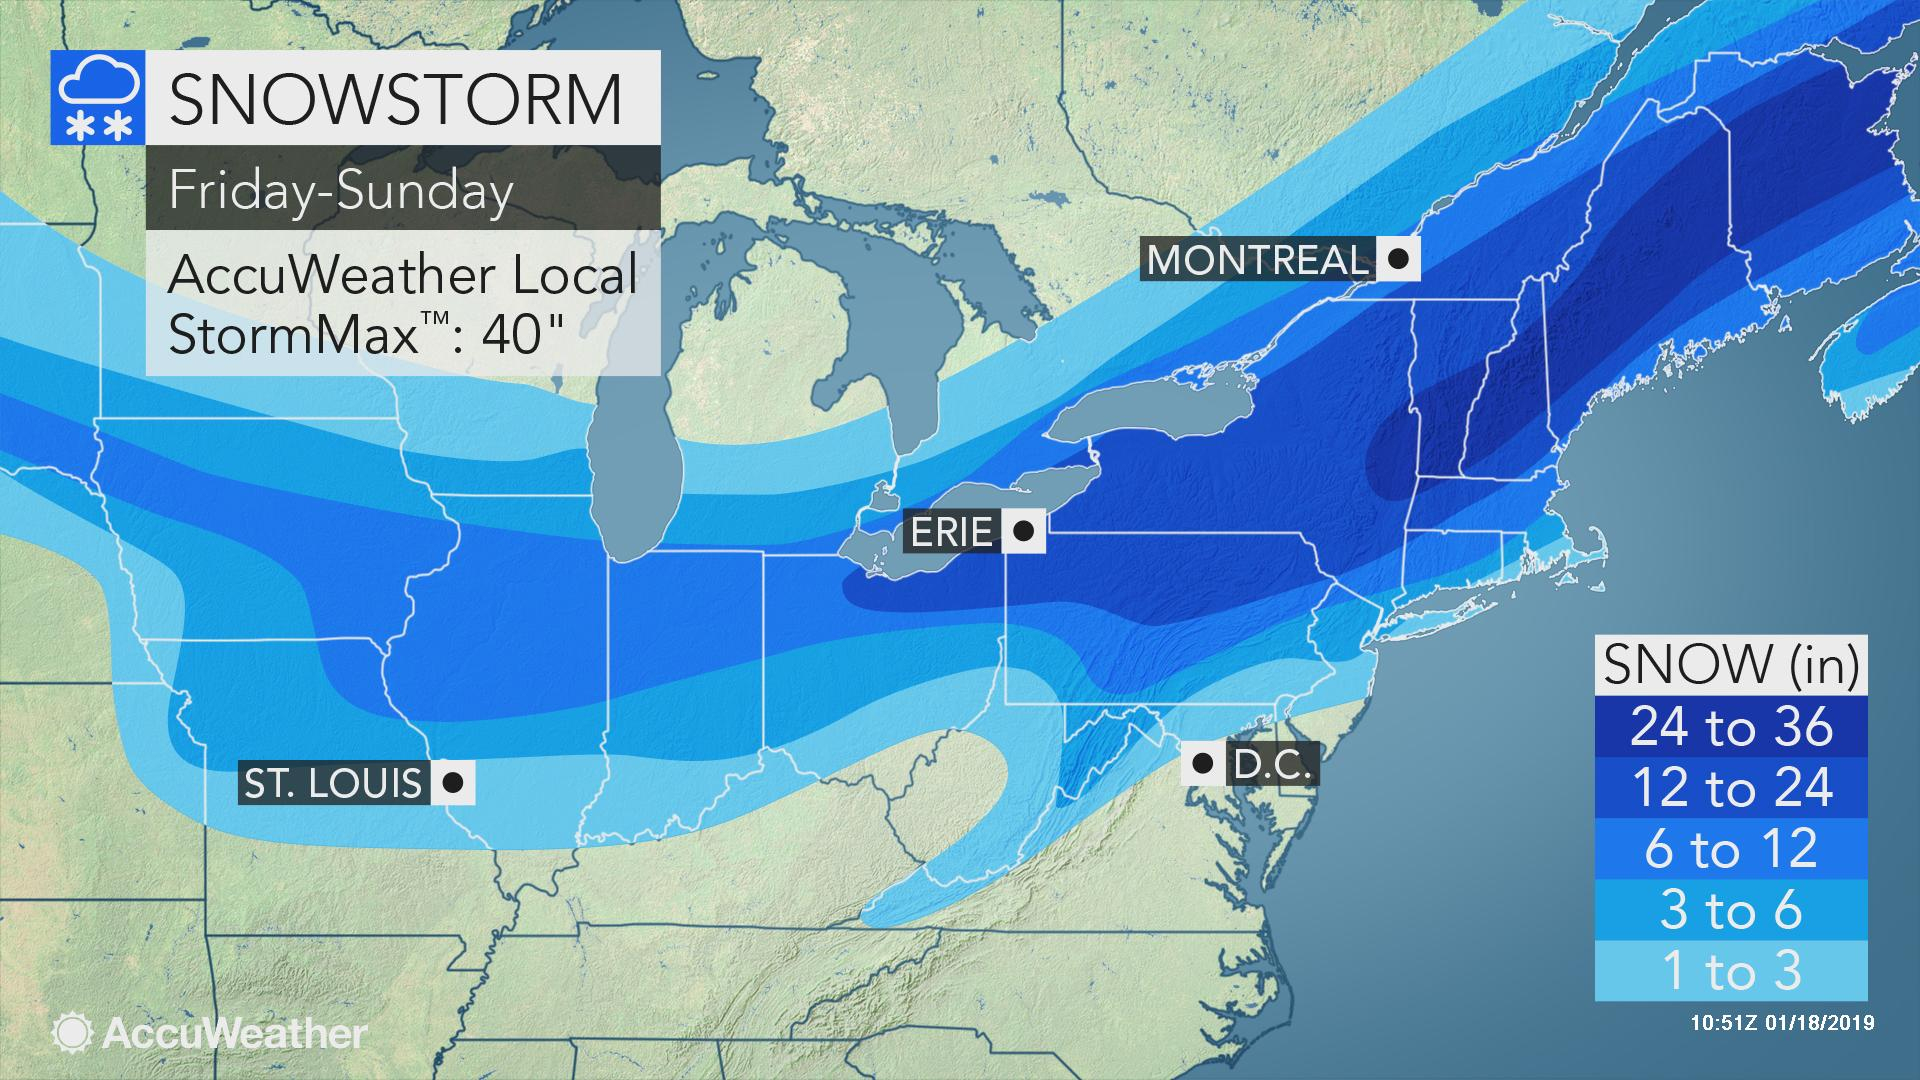 Immobilizing Blizzard With Feet Of Snow Looms For Interior Northeast - California Snow Map